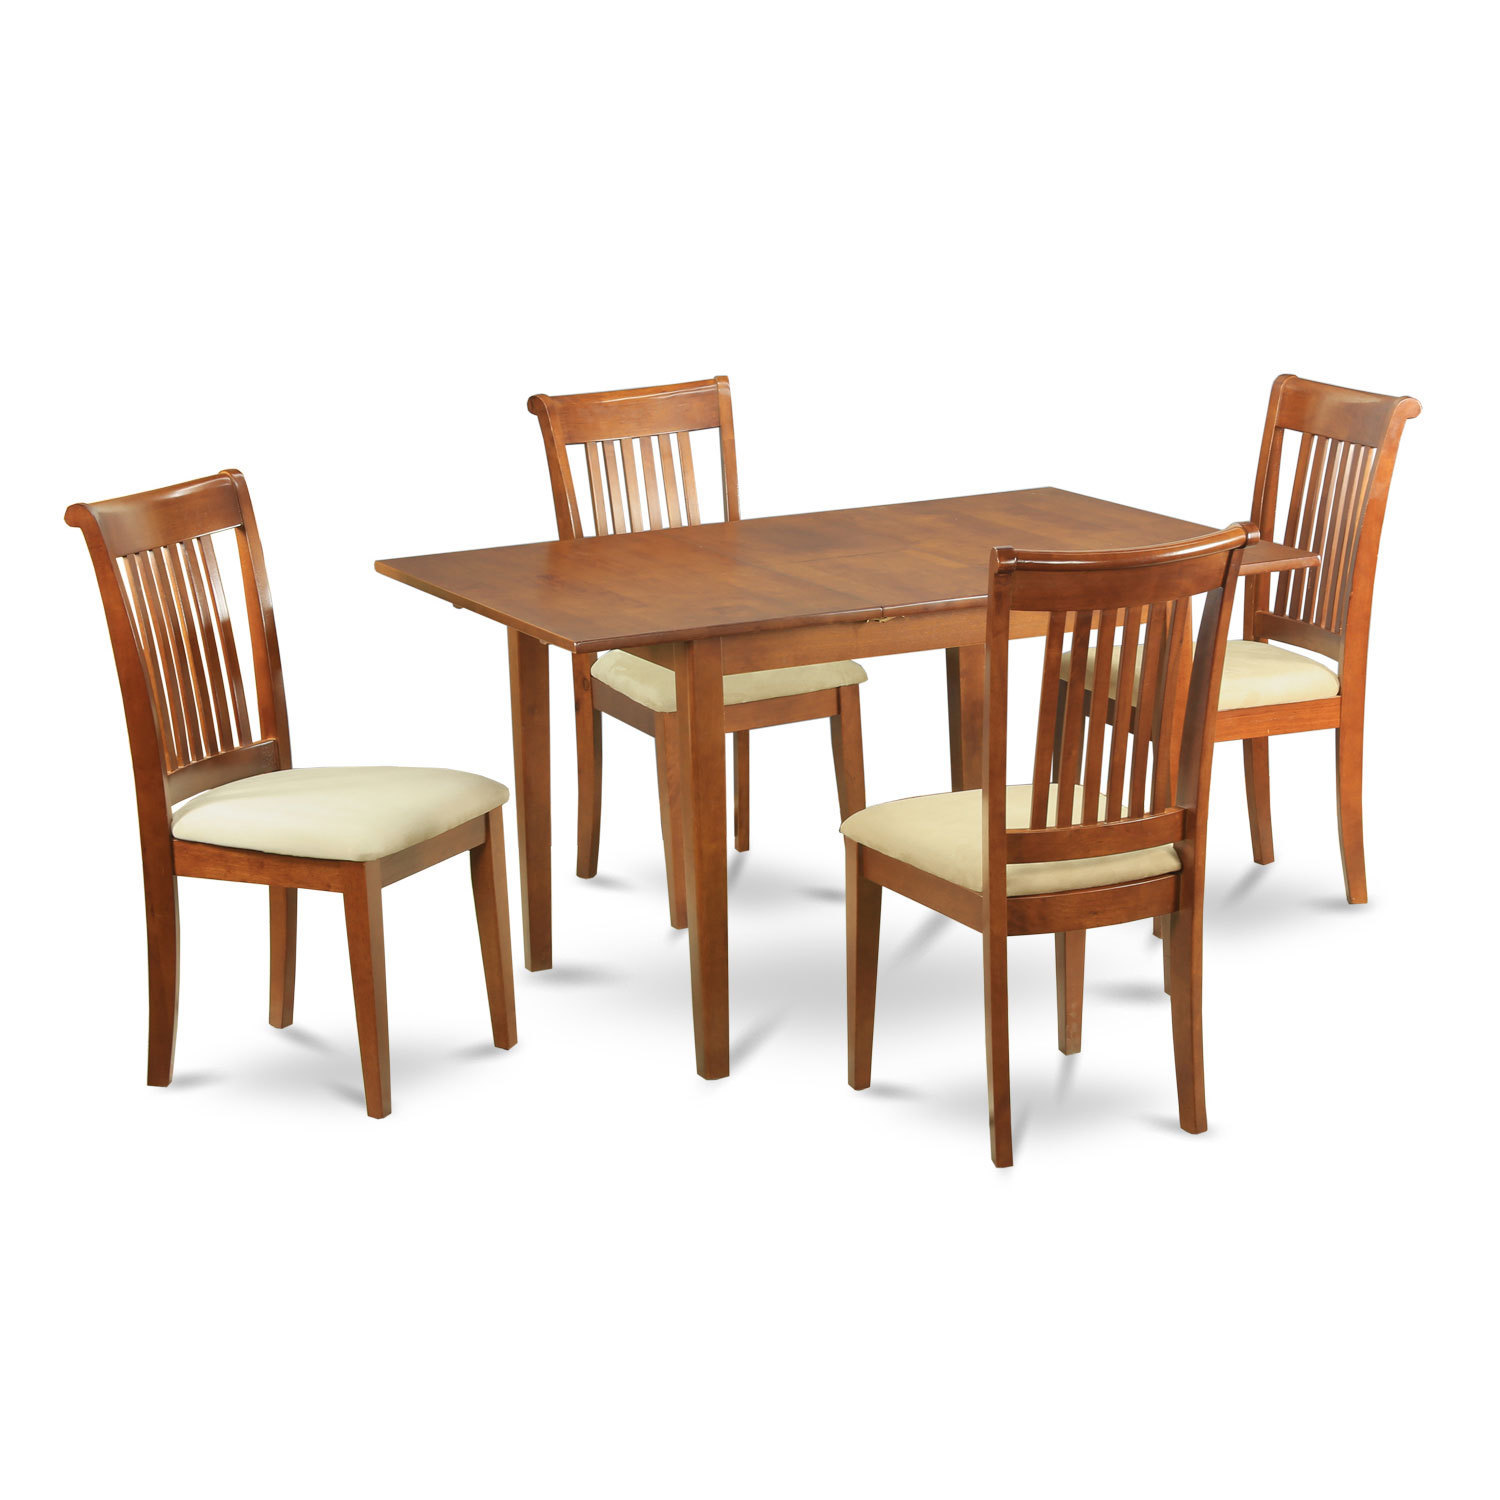 Small dinette set design homesfeed for Mini dining table and chairs